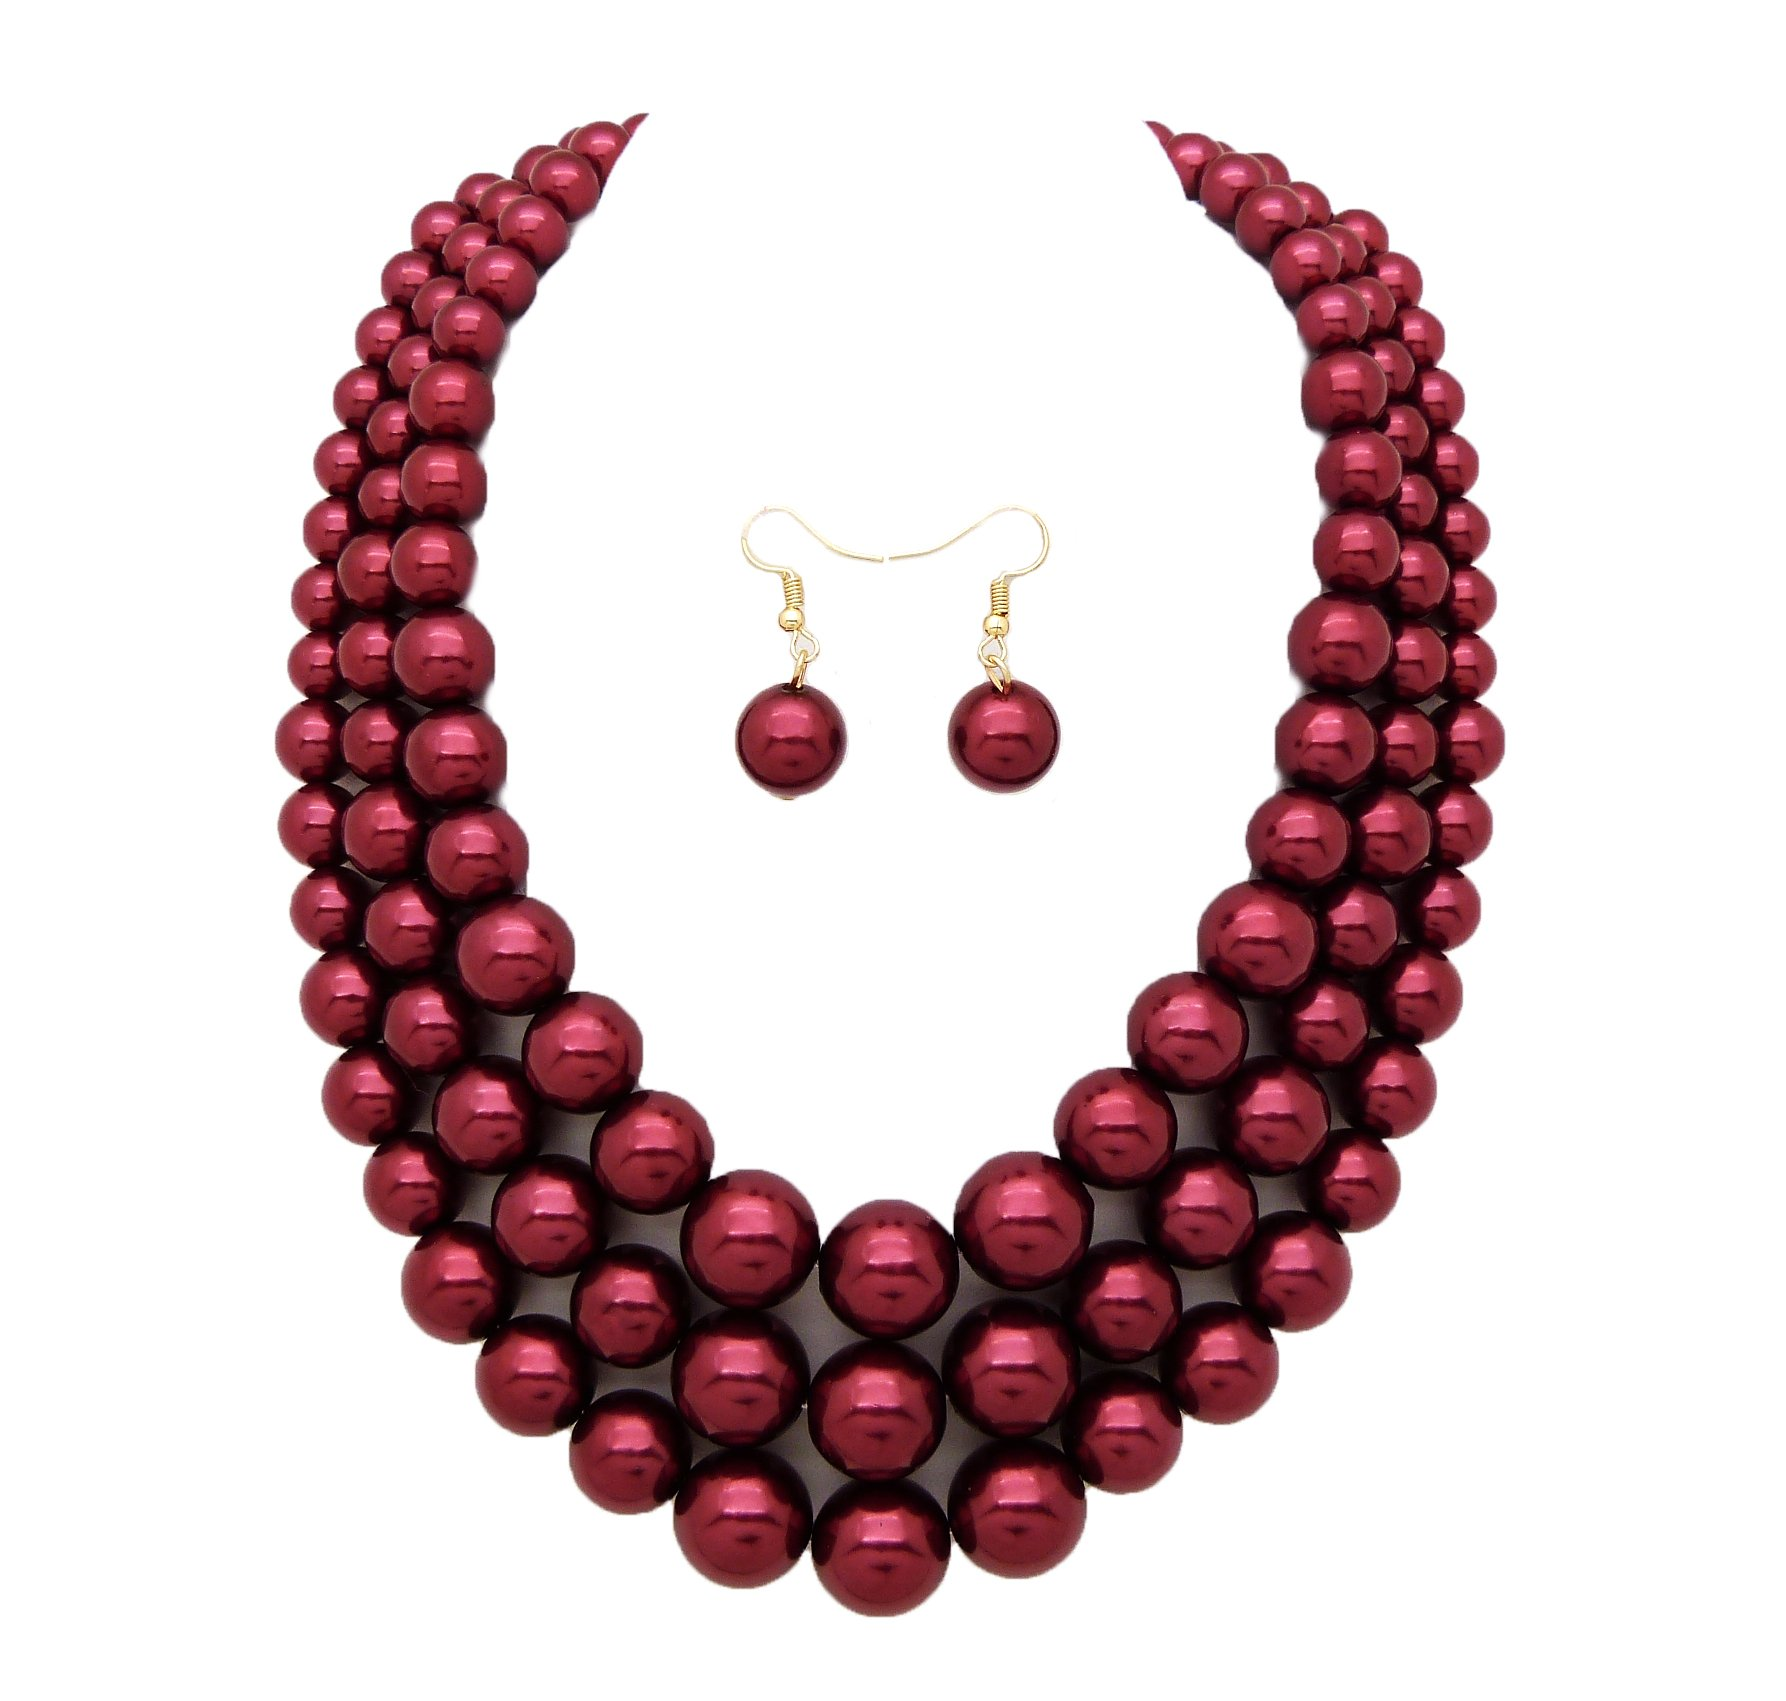 Women's Simulated Faux Three Multi-Strand Pearl Statement Necklace and Earrings Set (Burgundy Wine)